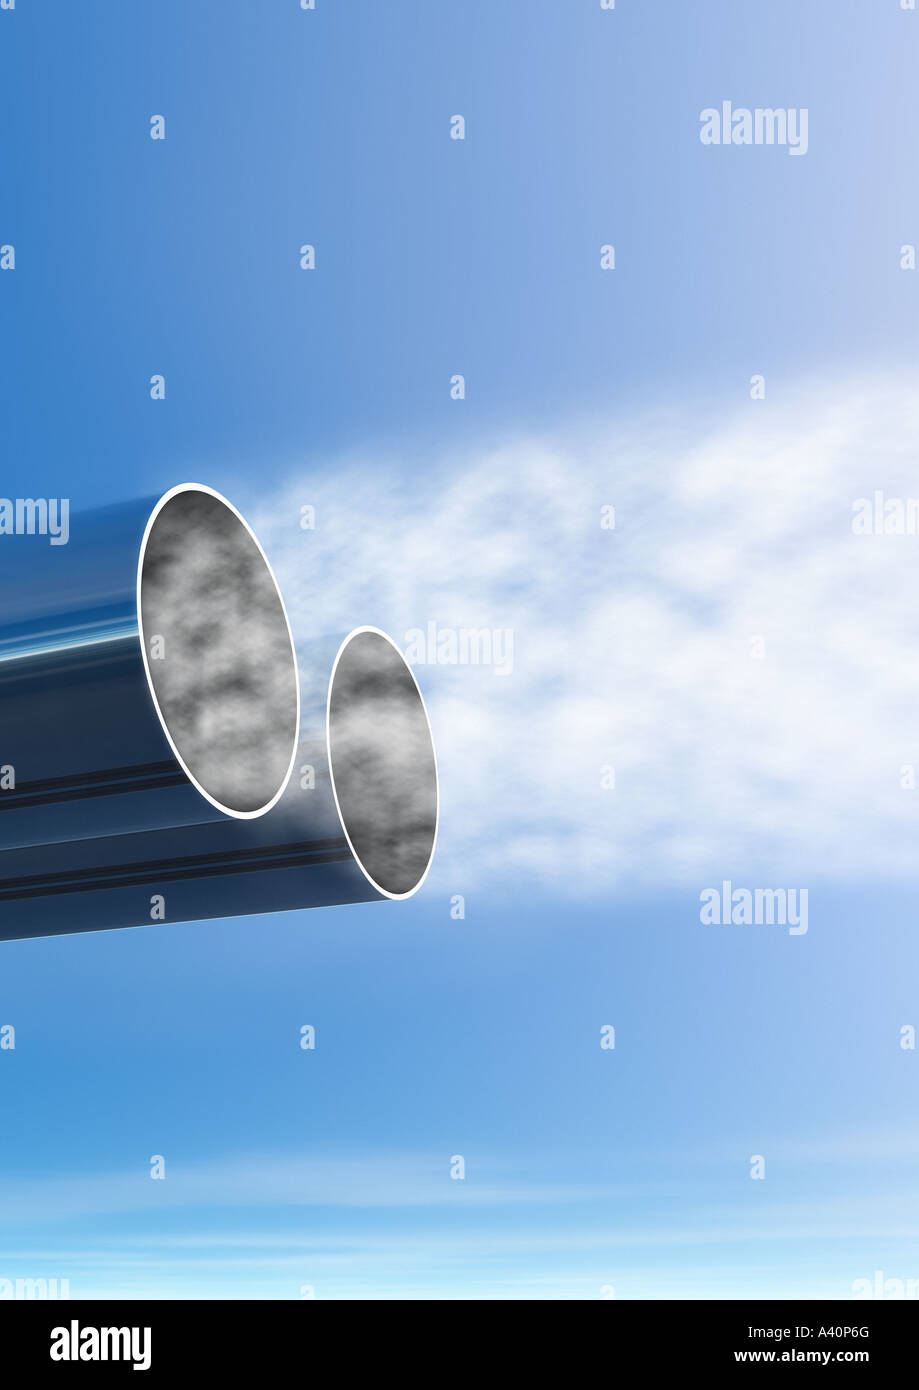 exhaust pipe and exhaust gases coming out of it Auspuff und herausströmende Abgase helle Rauchwolken - Stock Image